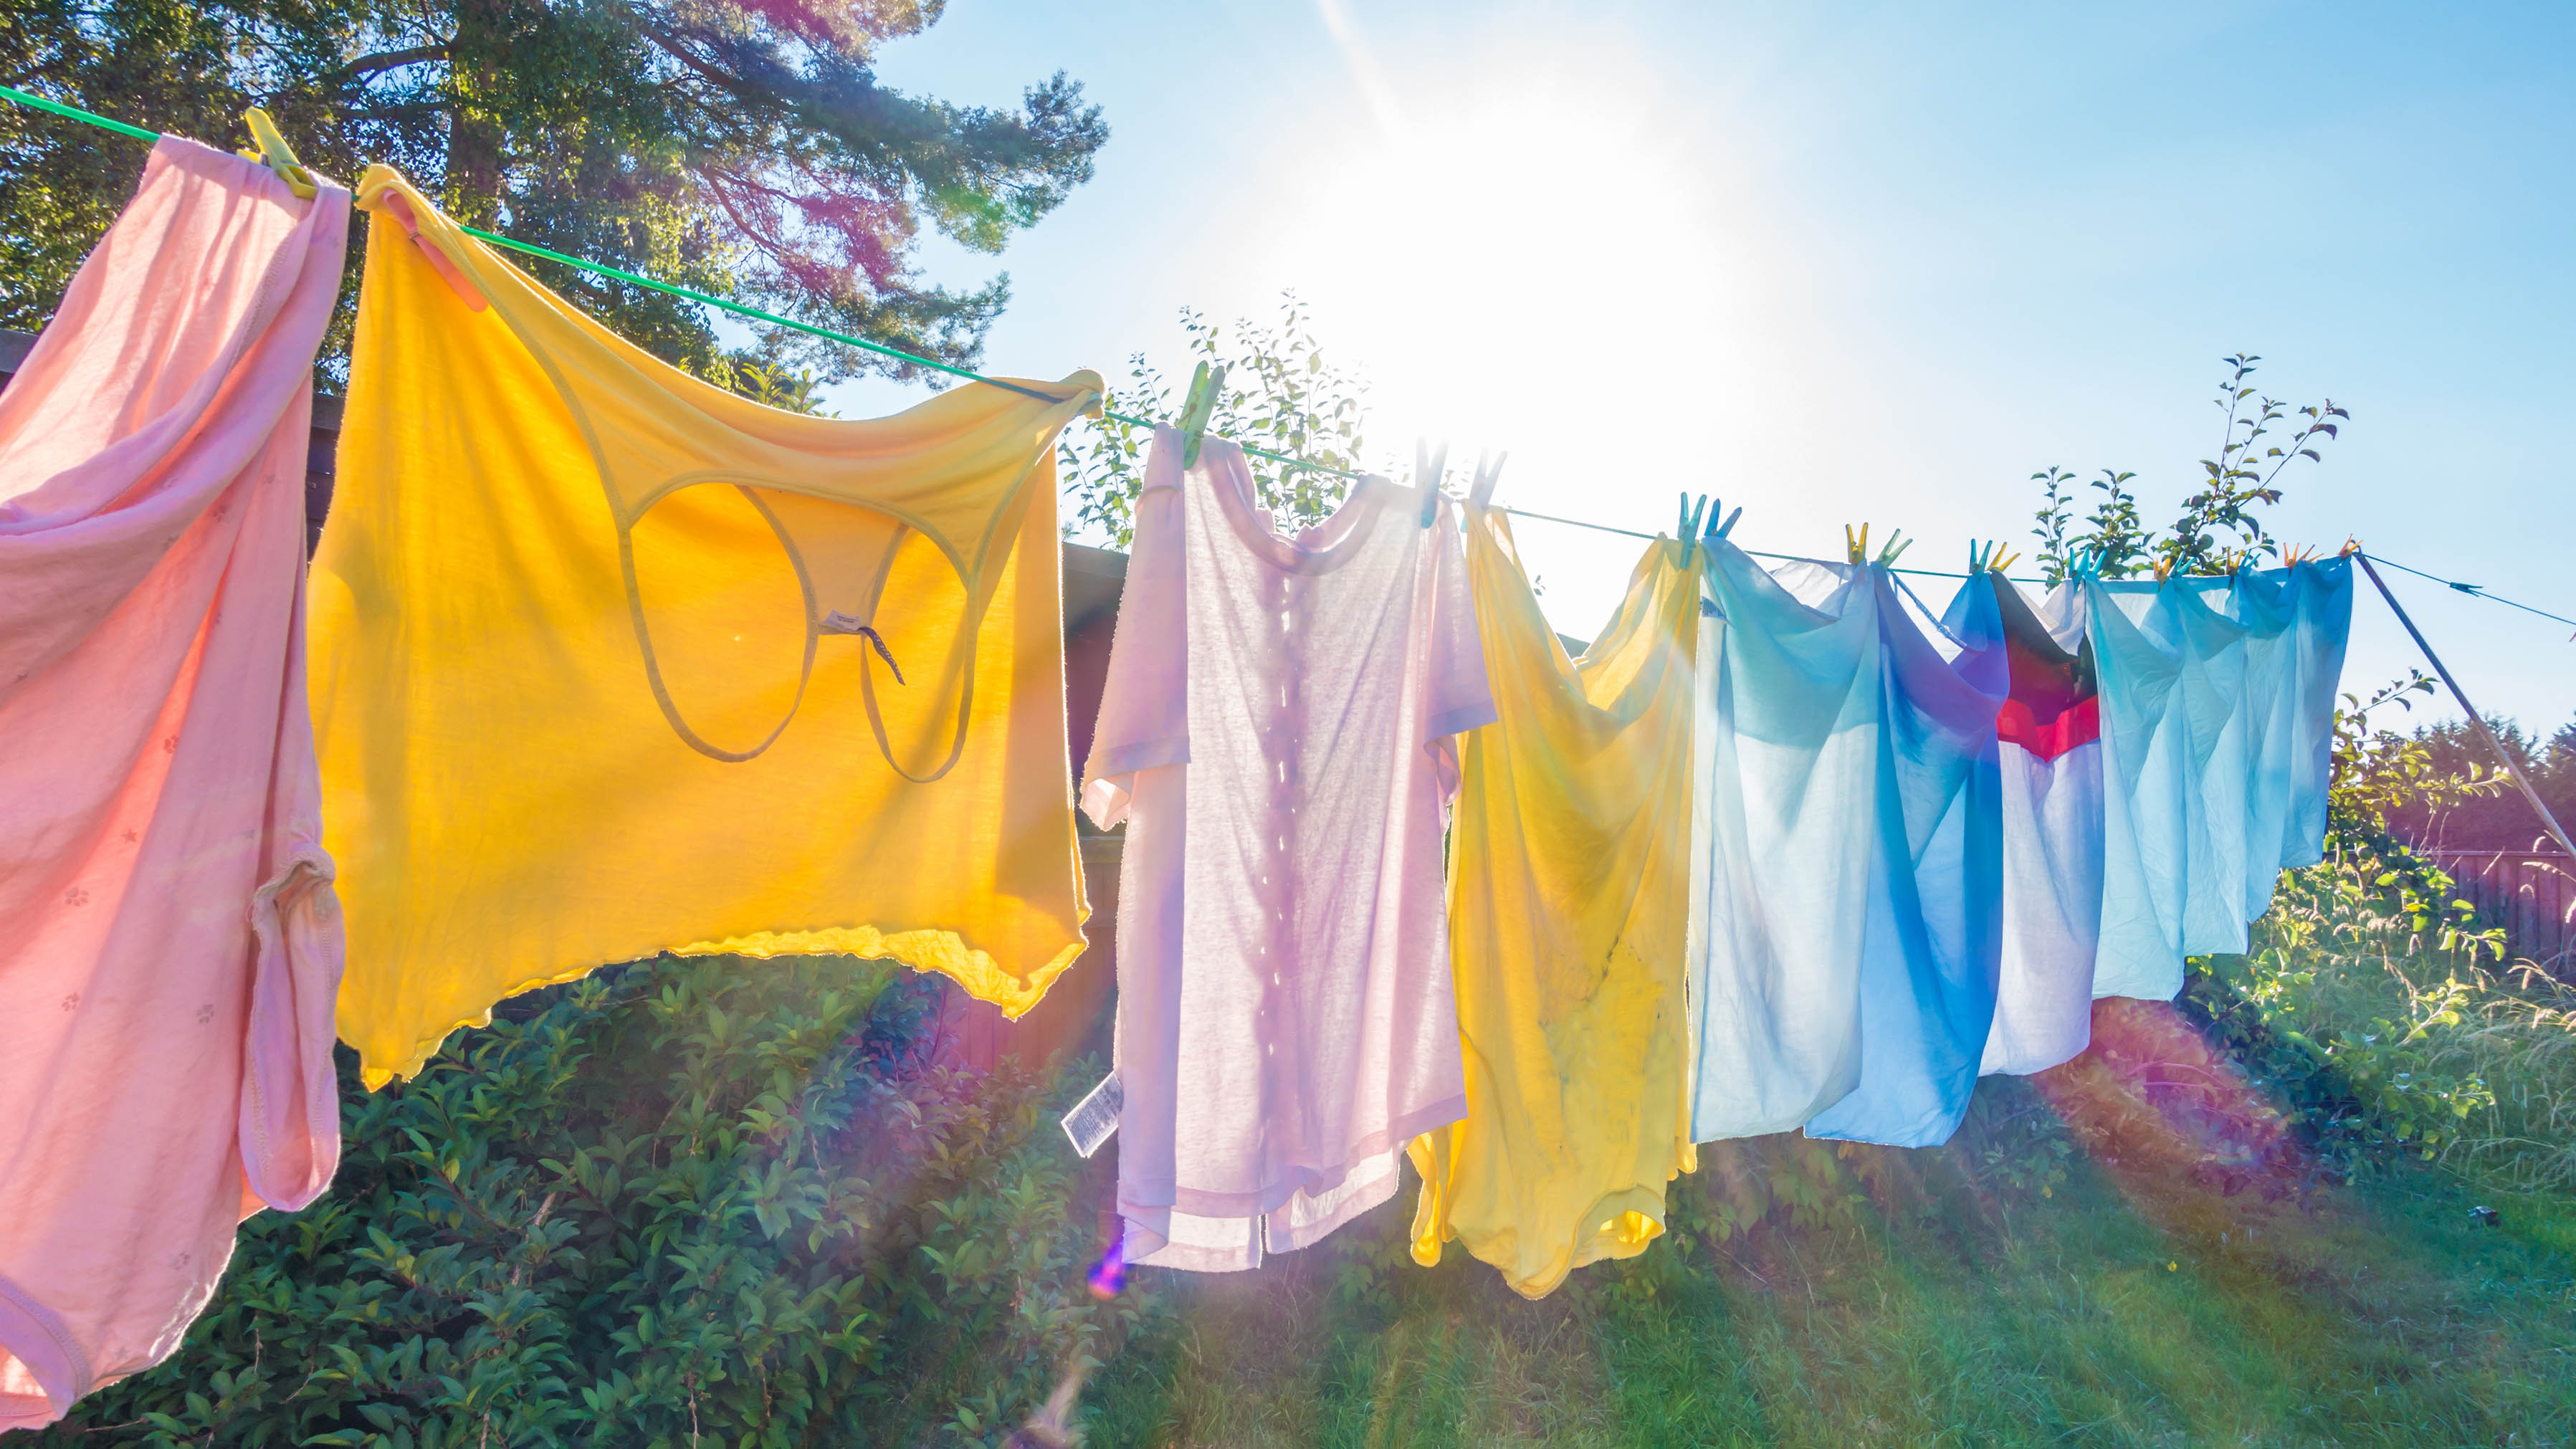 How to make your laundry more eco-friendly - washing line